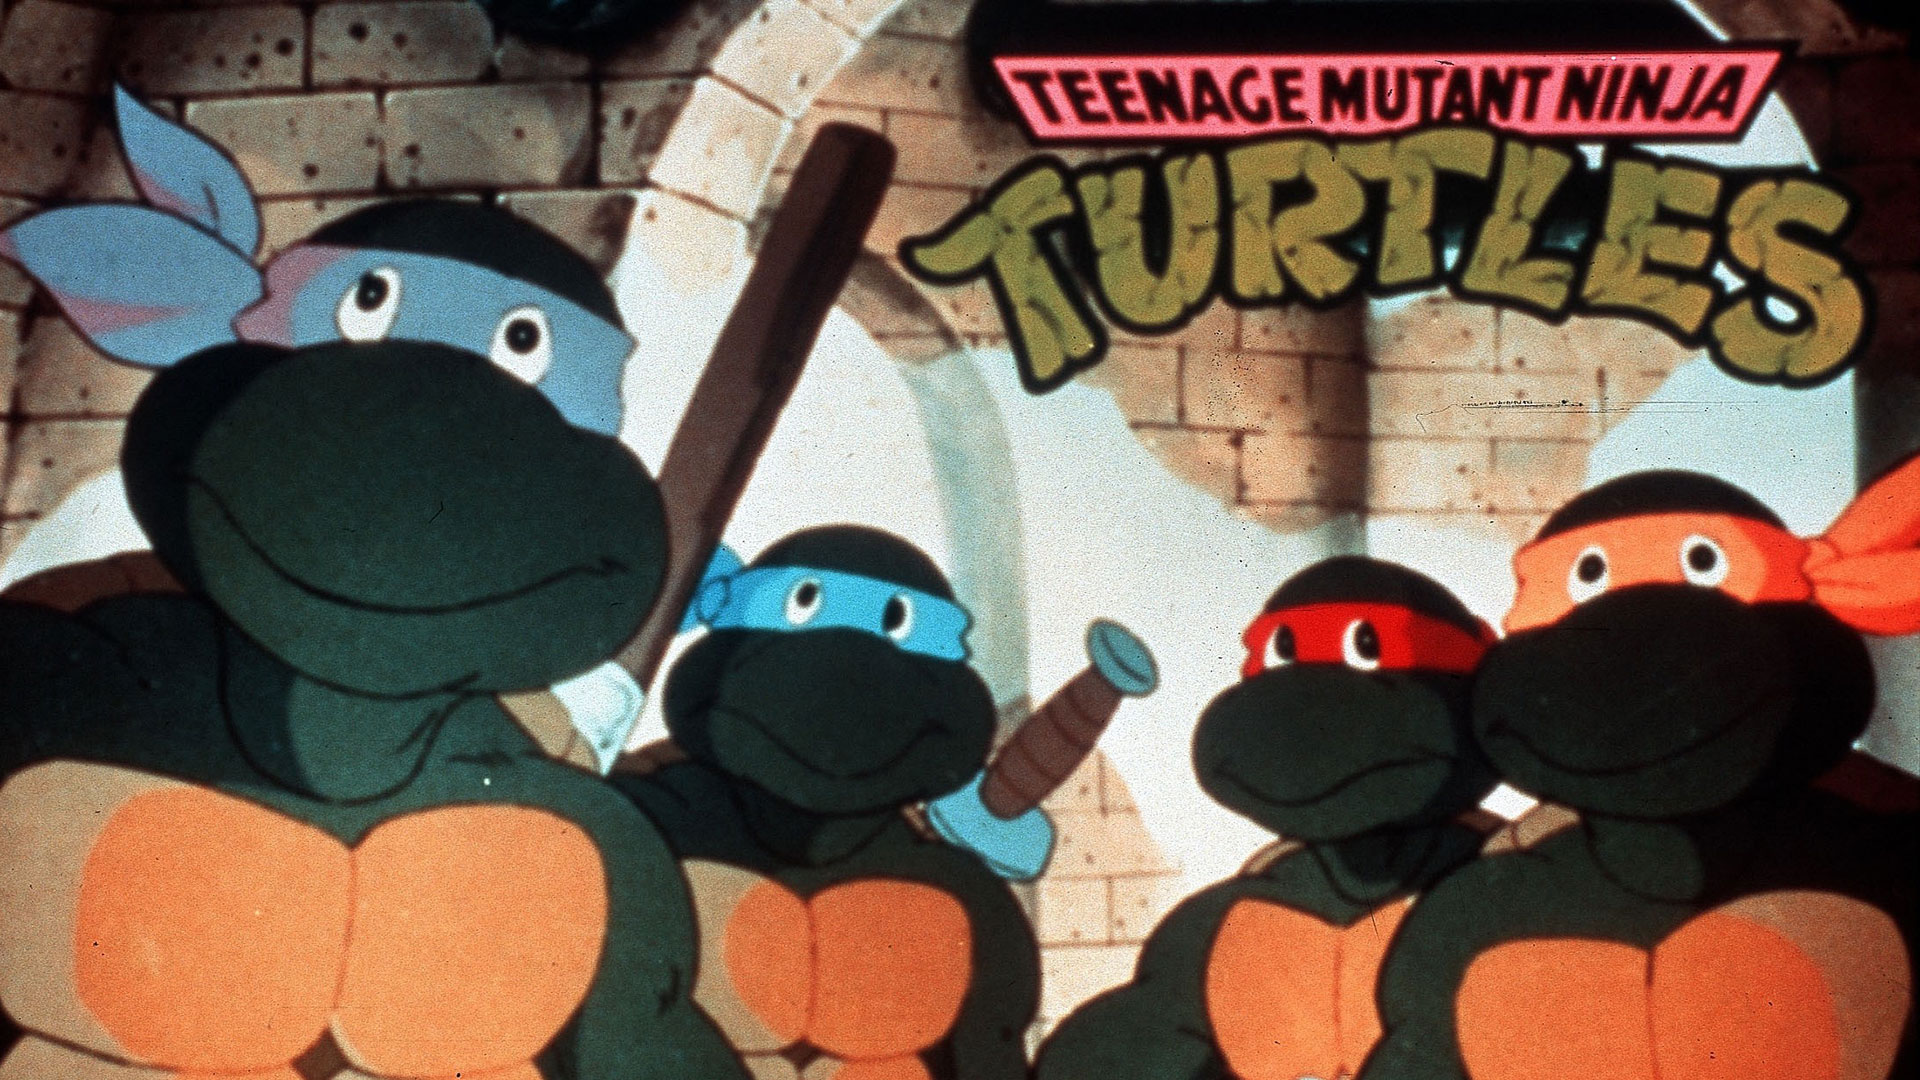 Teenage Mutant Ninja Turtles (1987-1996)